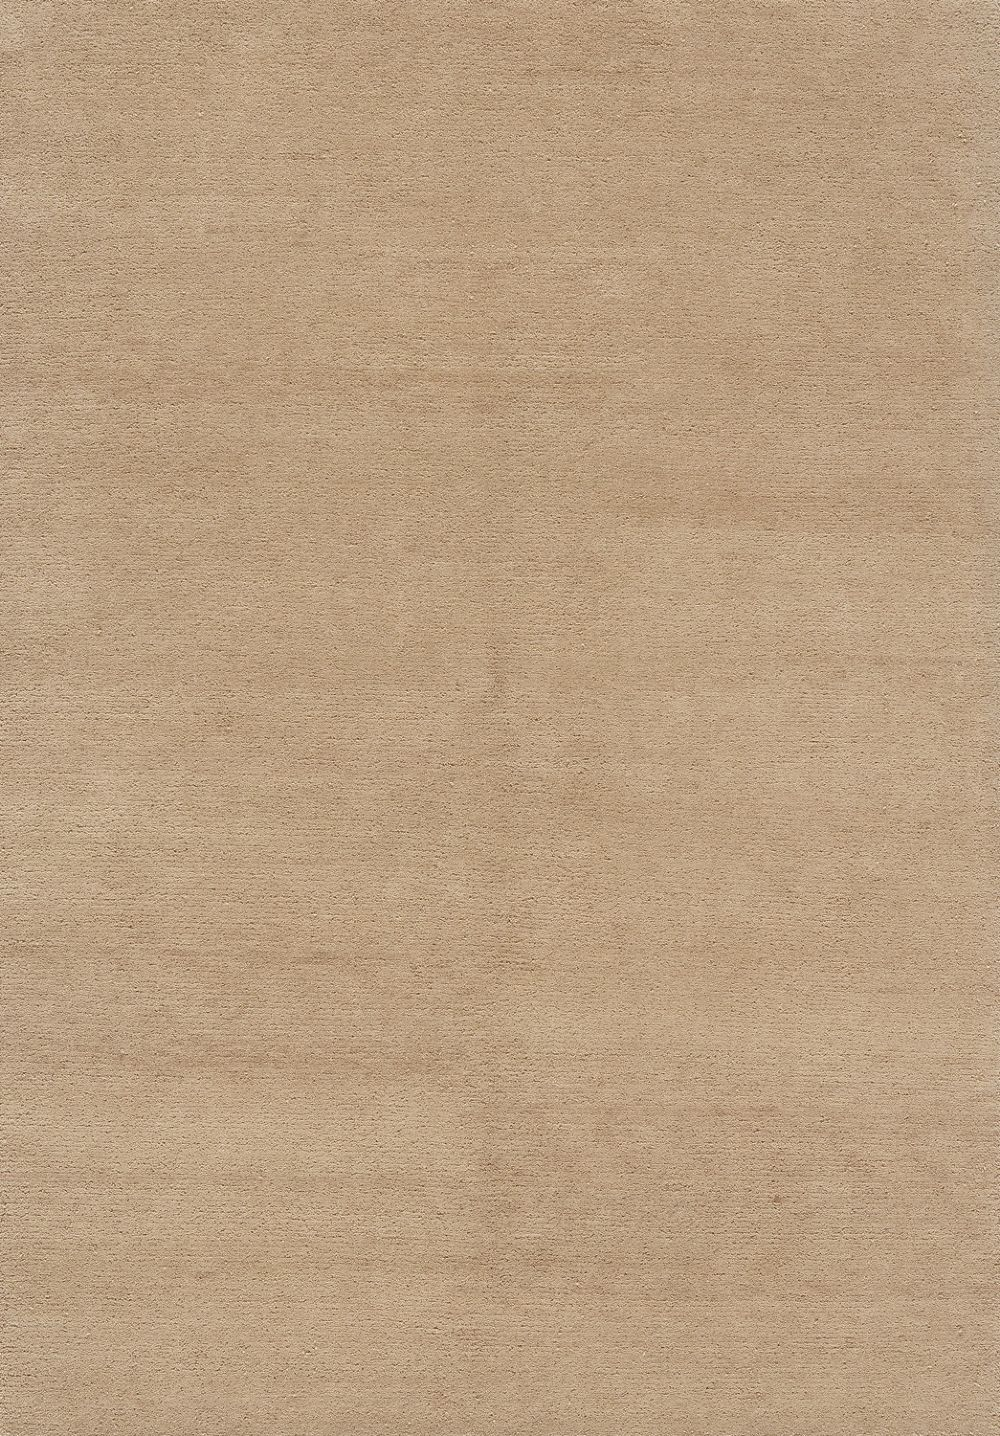 momeni desert gabbeh solid/striped area rug collection